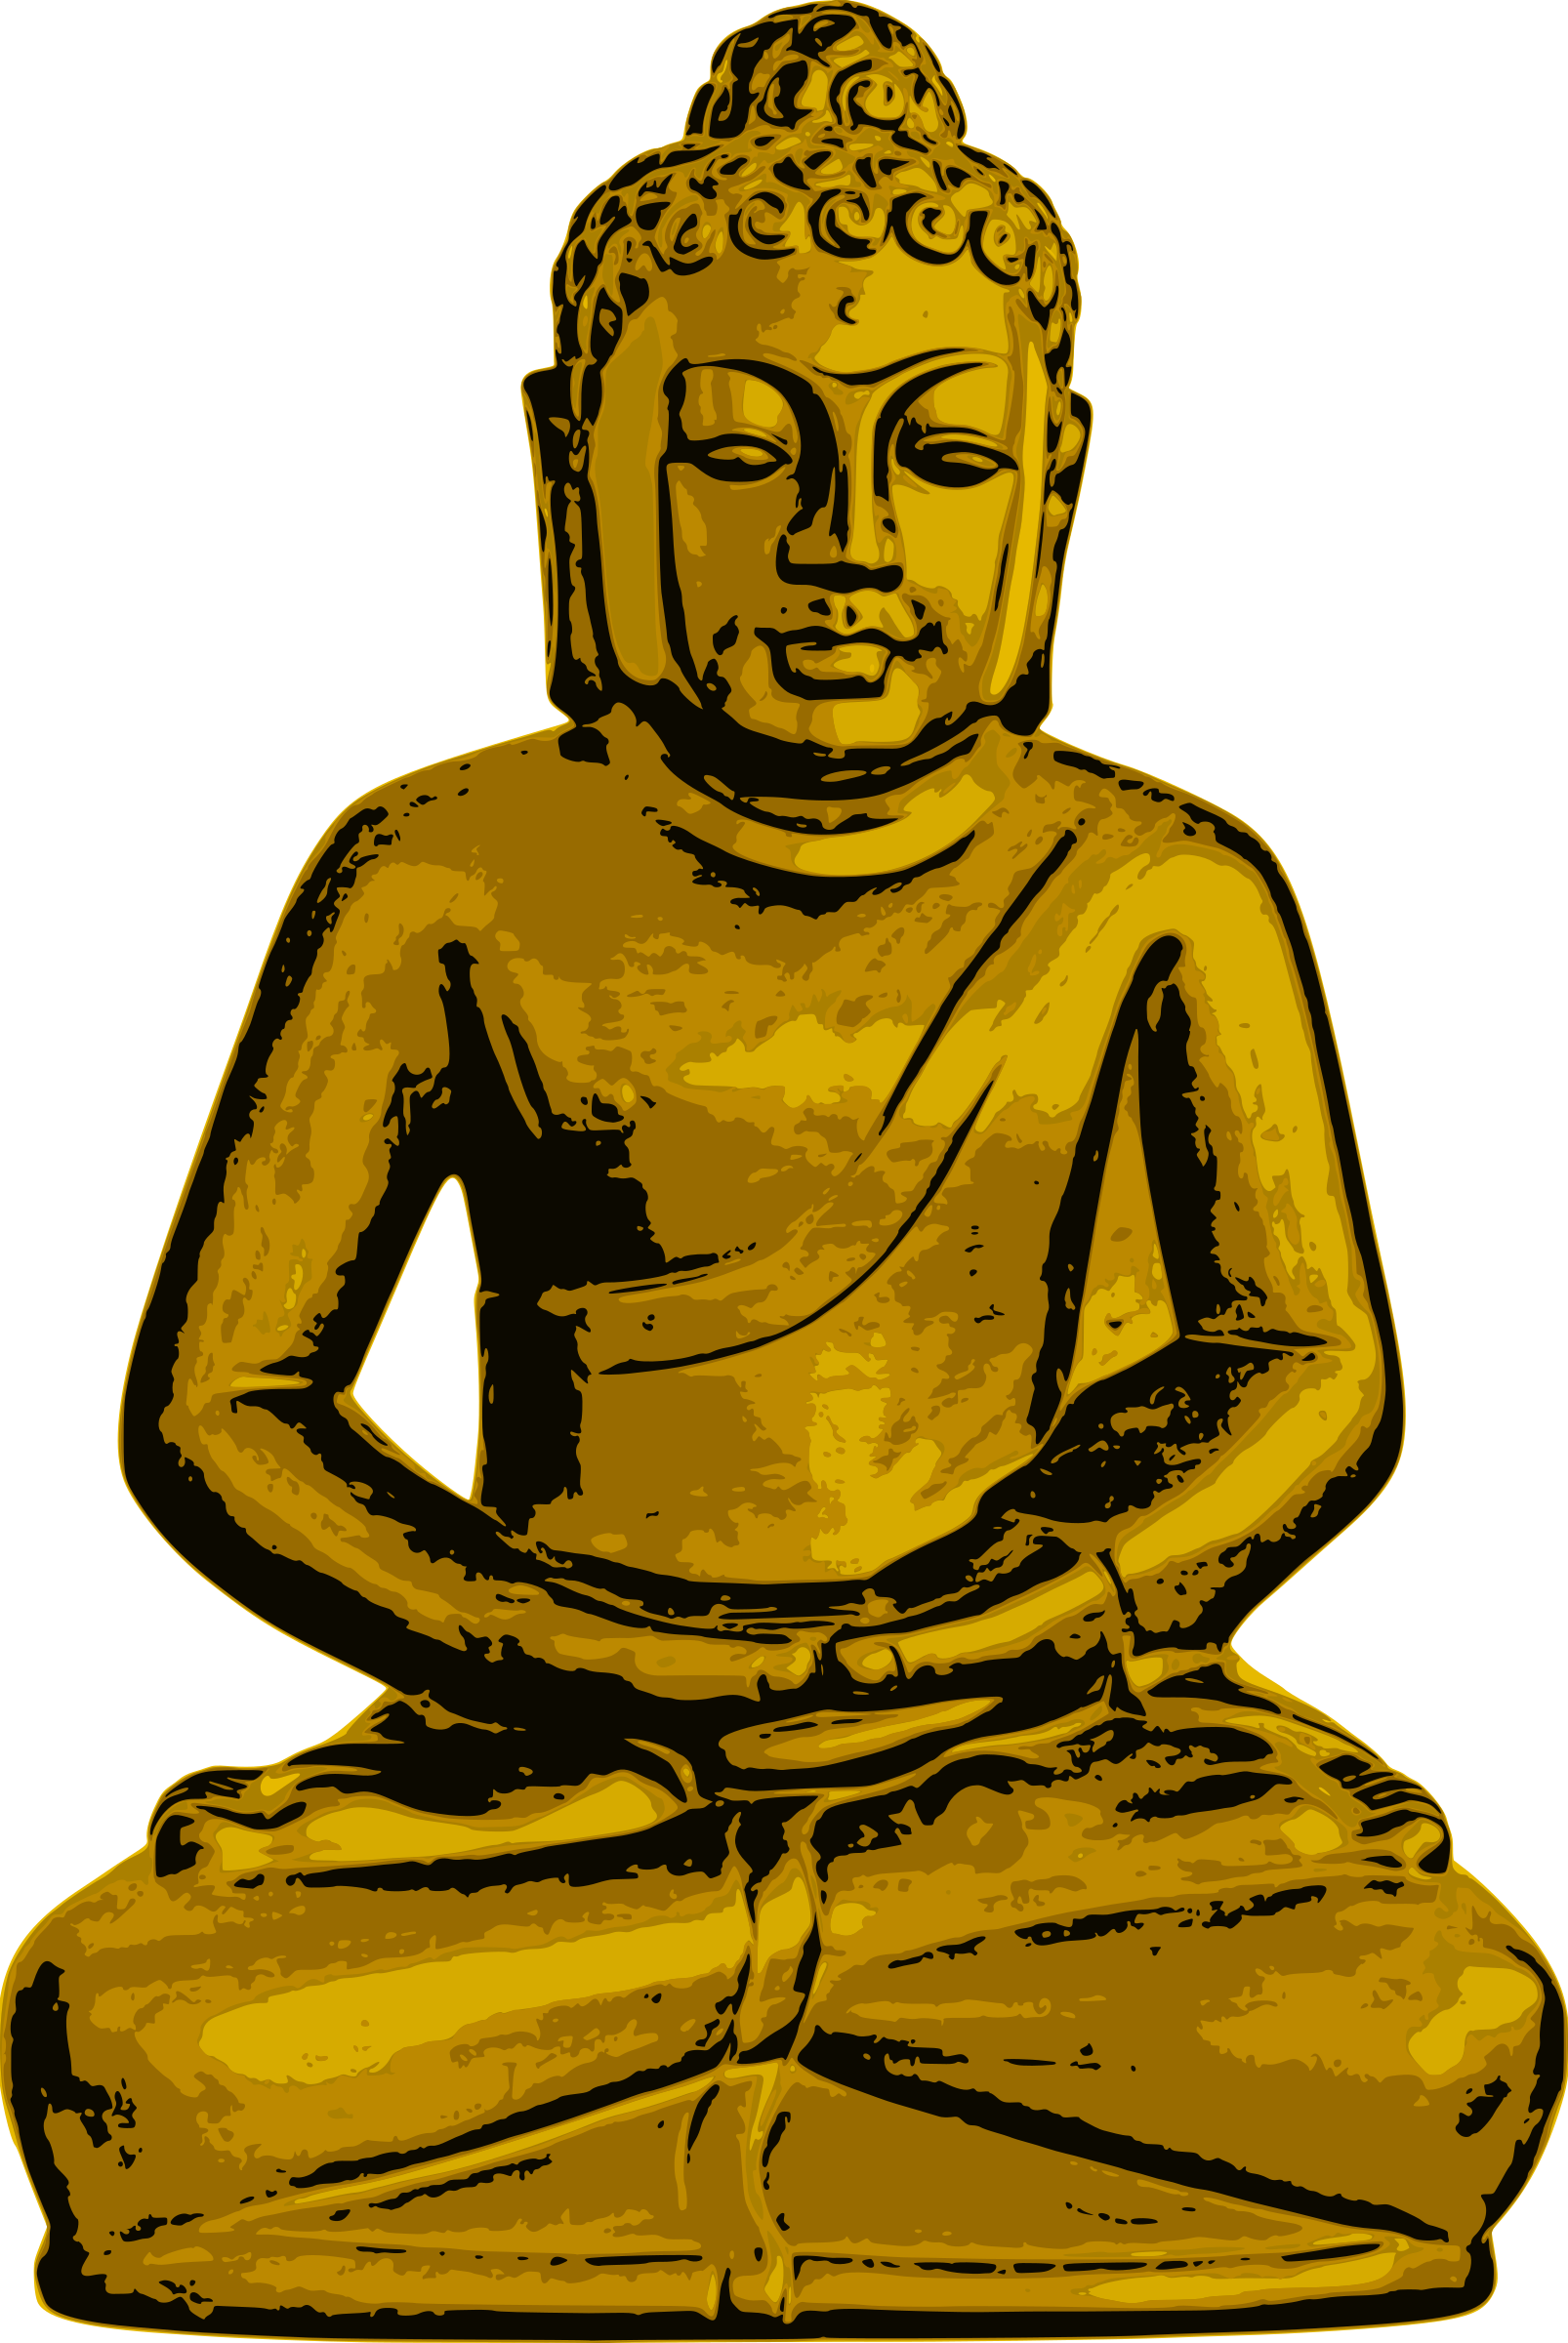 Golden Buddha by Tomas Sobek